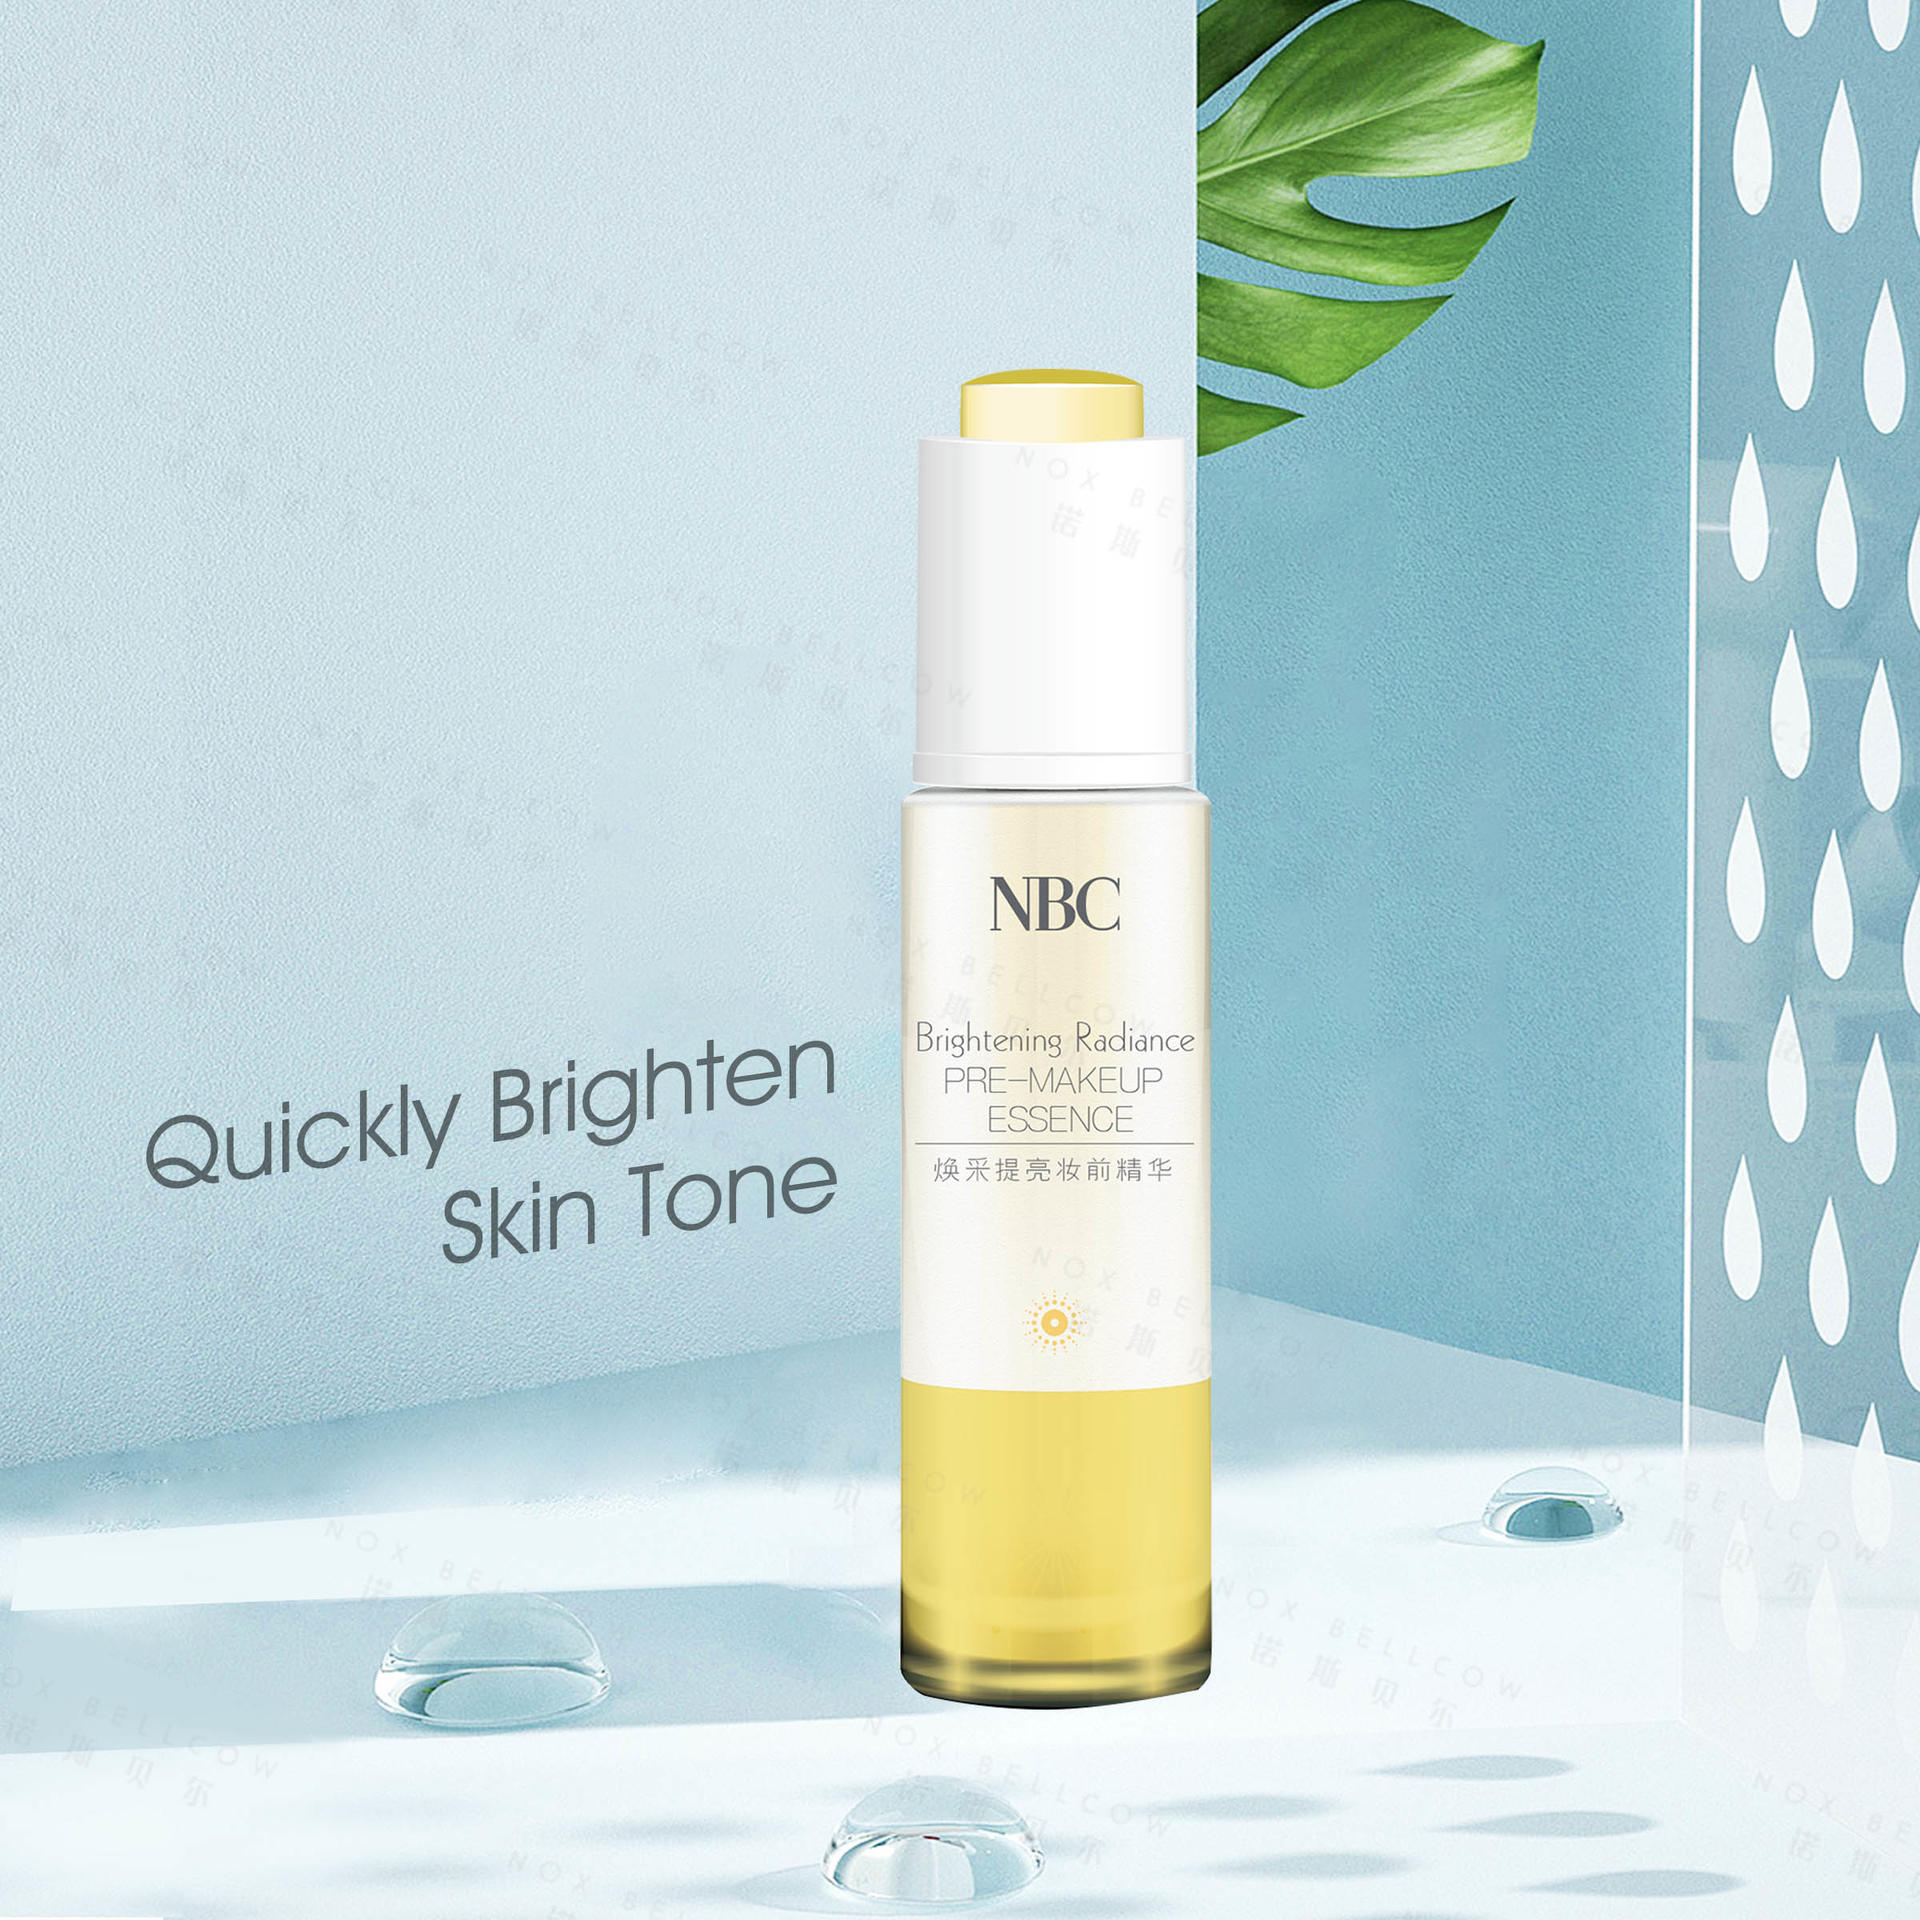 Brightening Radiance Pre-Makeup Essence